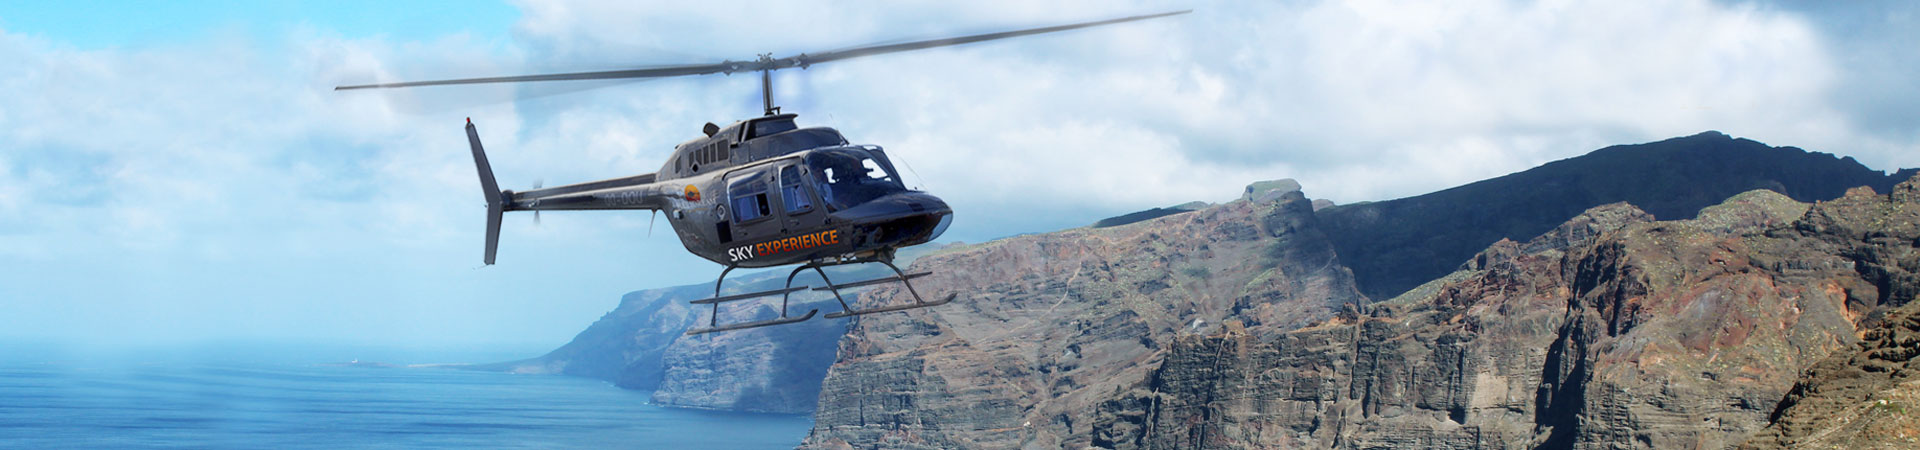 http://www.goodmorningtenerife.com/wp-content/uploads/2018/03/02a_helidream-helicopters-1920x450-1.jpg